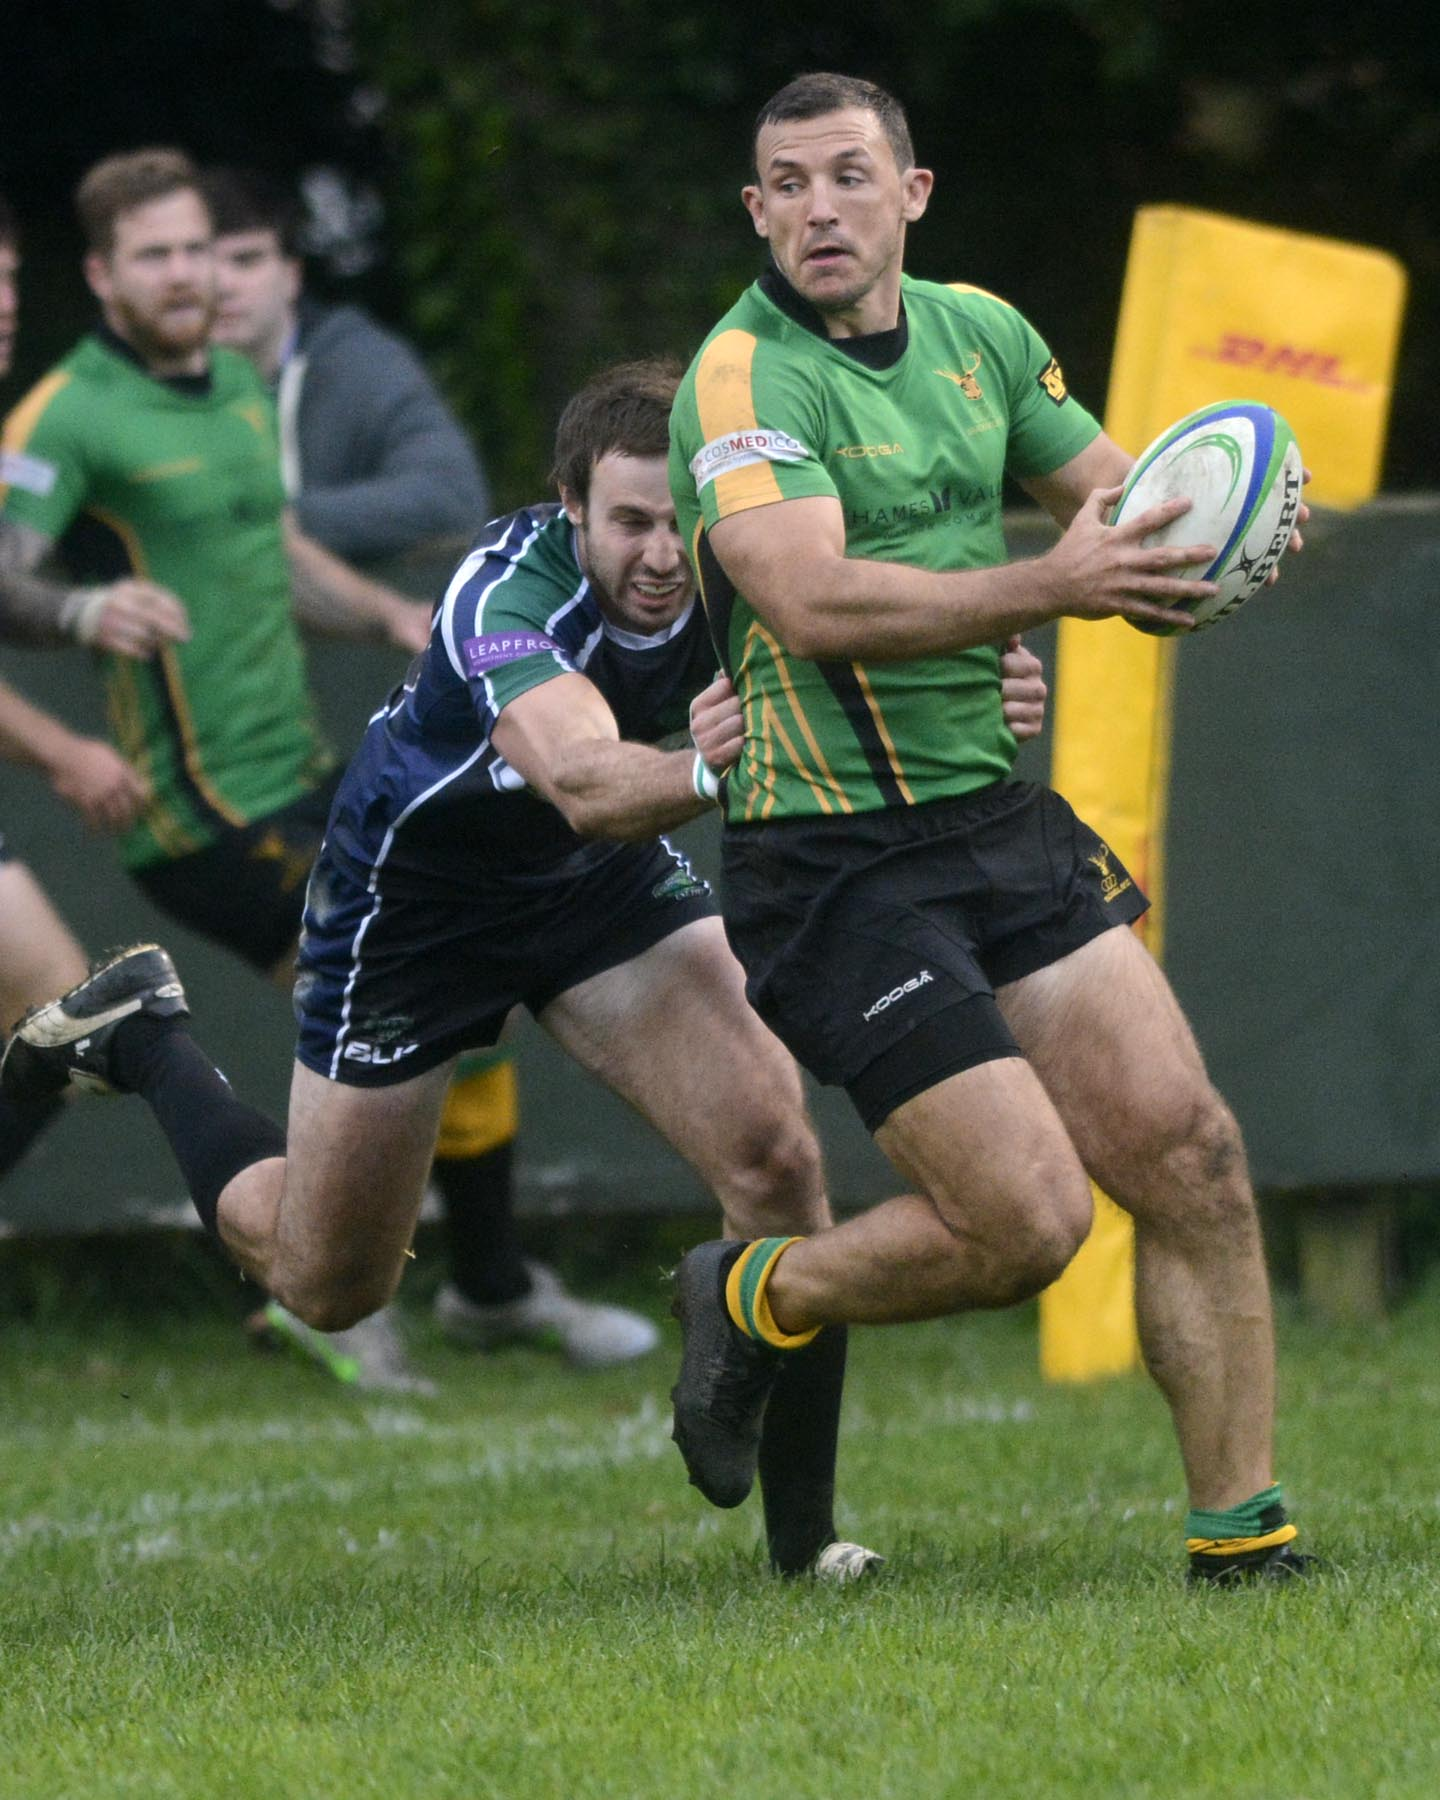 Stuart Mackay scored two tries for Bracknell